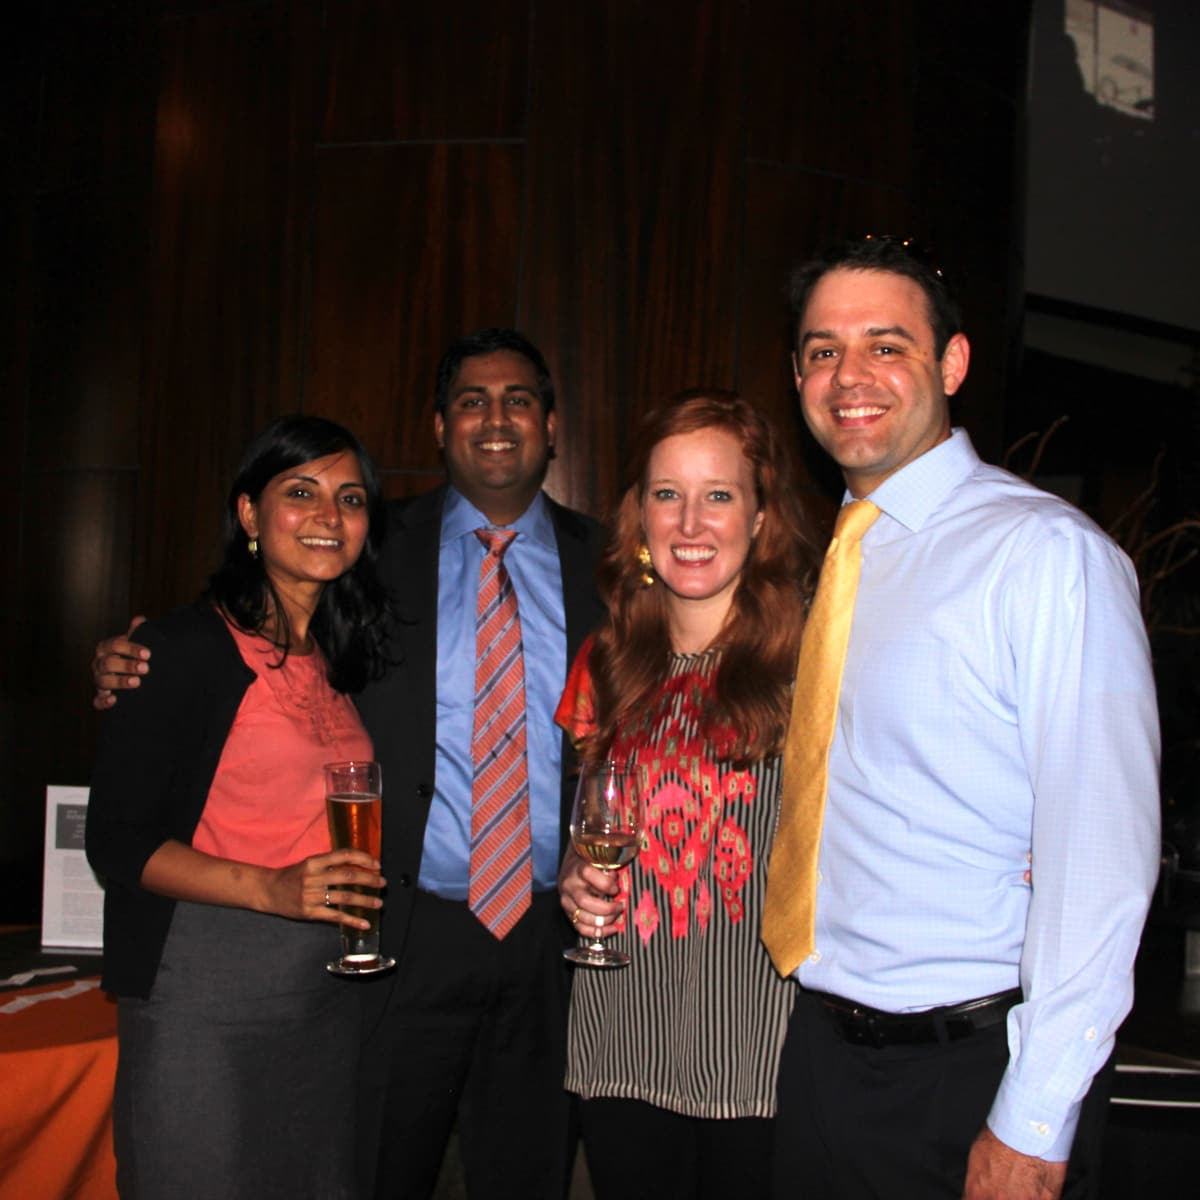 Houston, Friends of Depelchin Back to School Happy Hour, August 2015, Aditi Nayar, Rishabh Godha, Amy Hargis, David Hargis